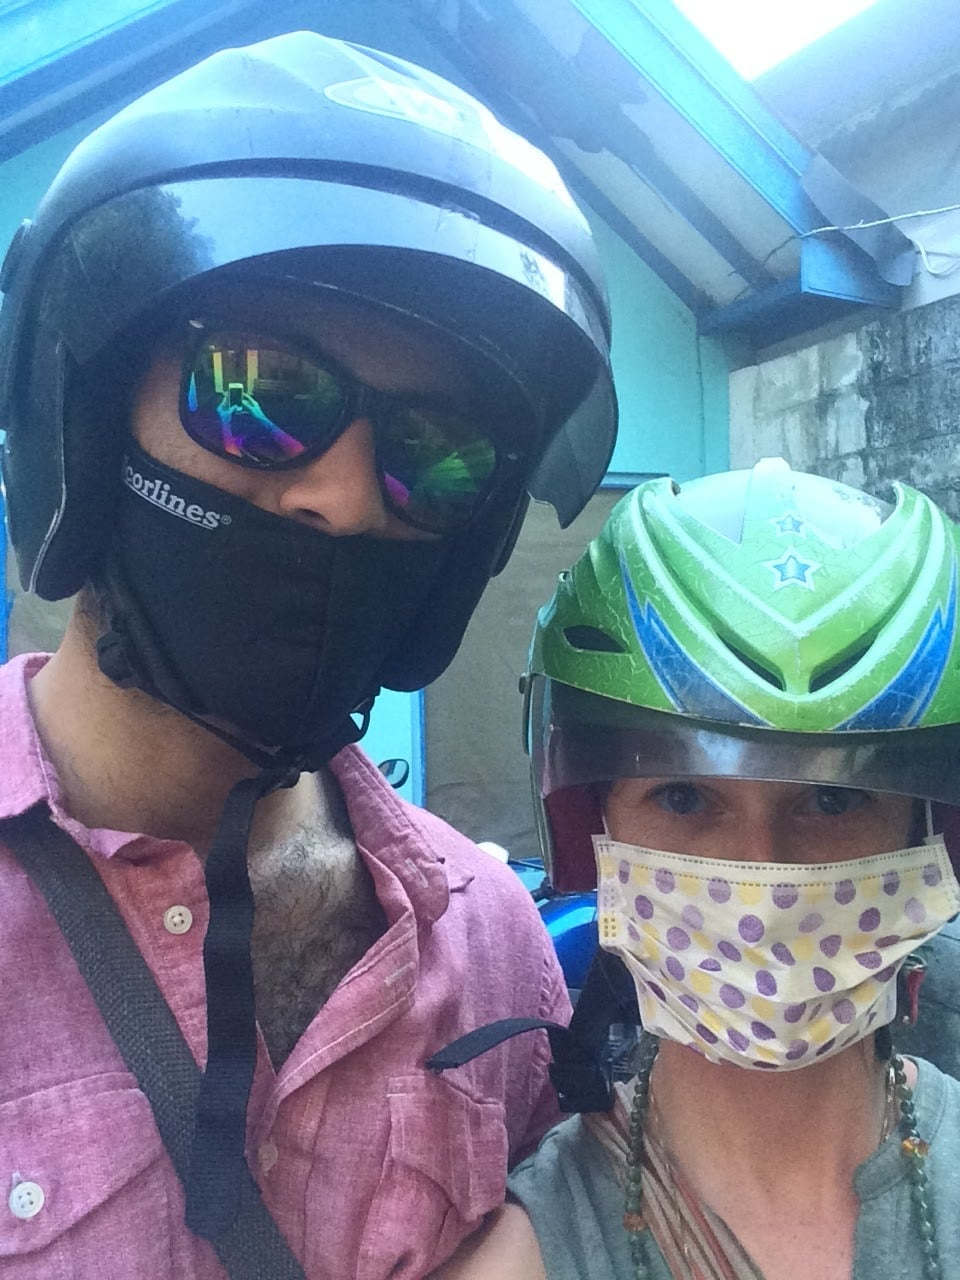 We bought masks after discovering the exhaust and just... stuff that flies at you while scootering around.